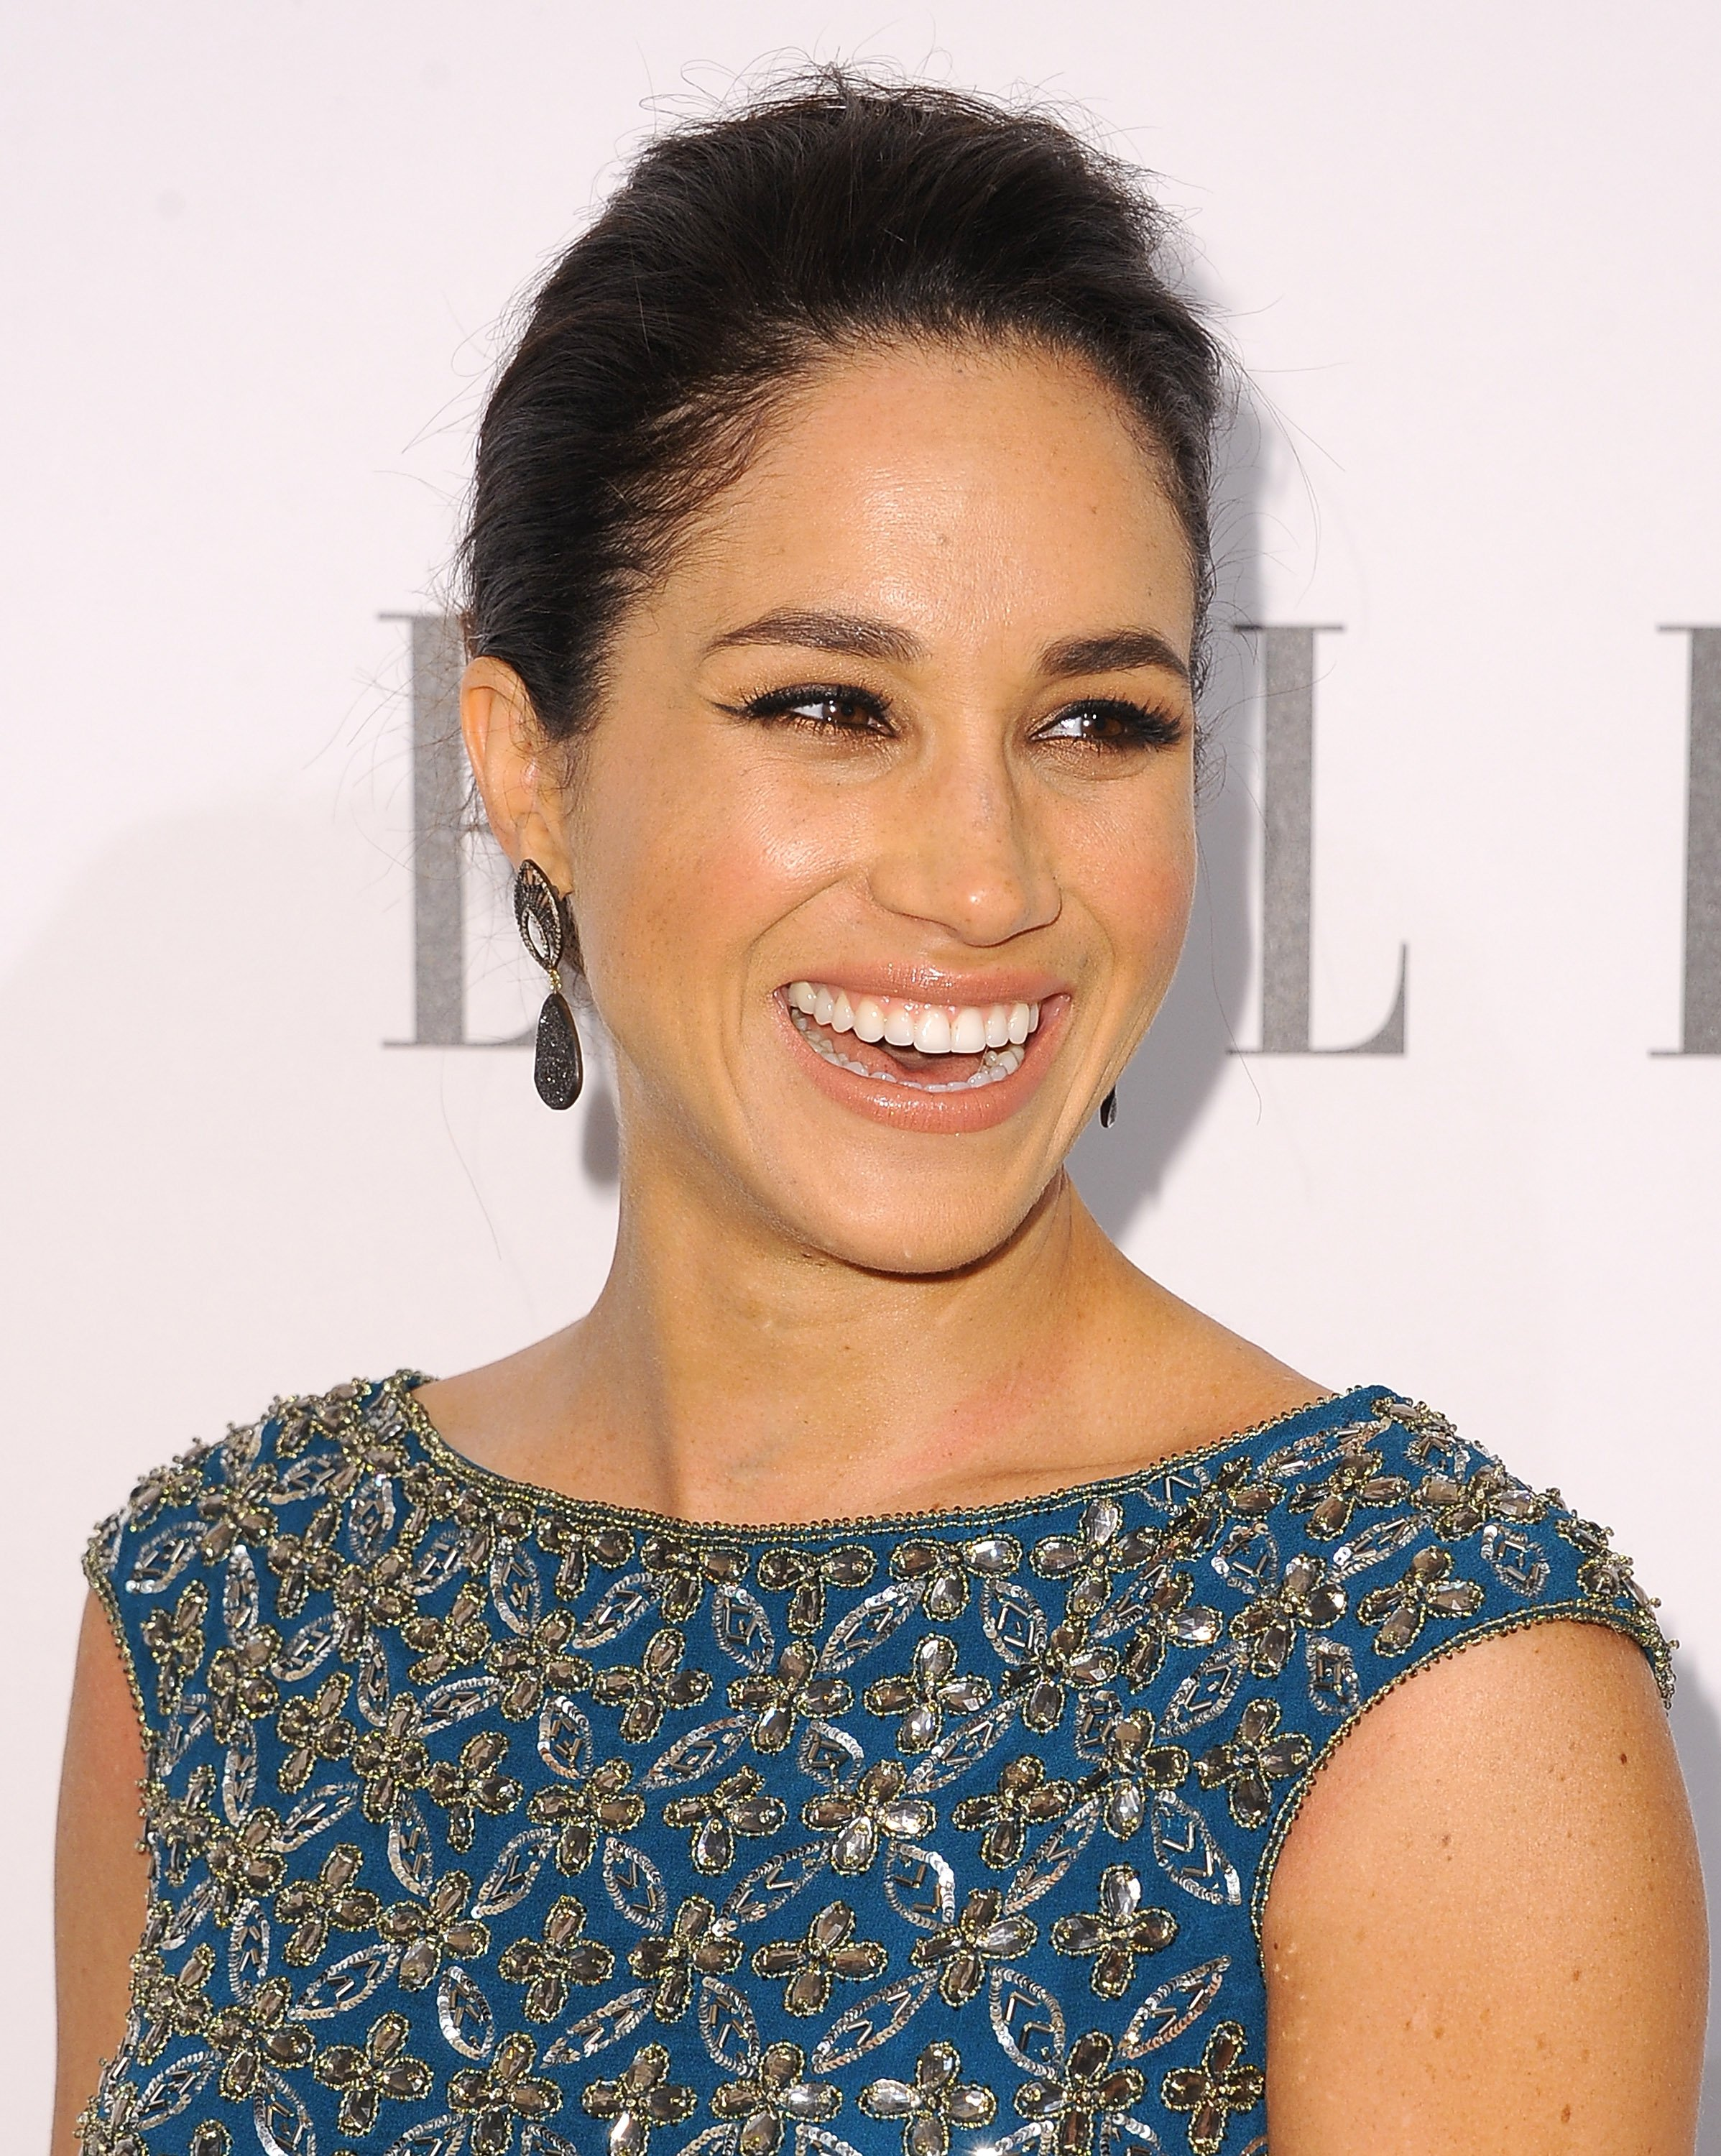 Meghan Markle attends ELLE's Annual Women in Television Celebration at Sunset Tower on January 22, 2014 in West Hollywood, California | Photo: Getty Images